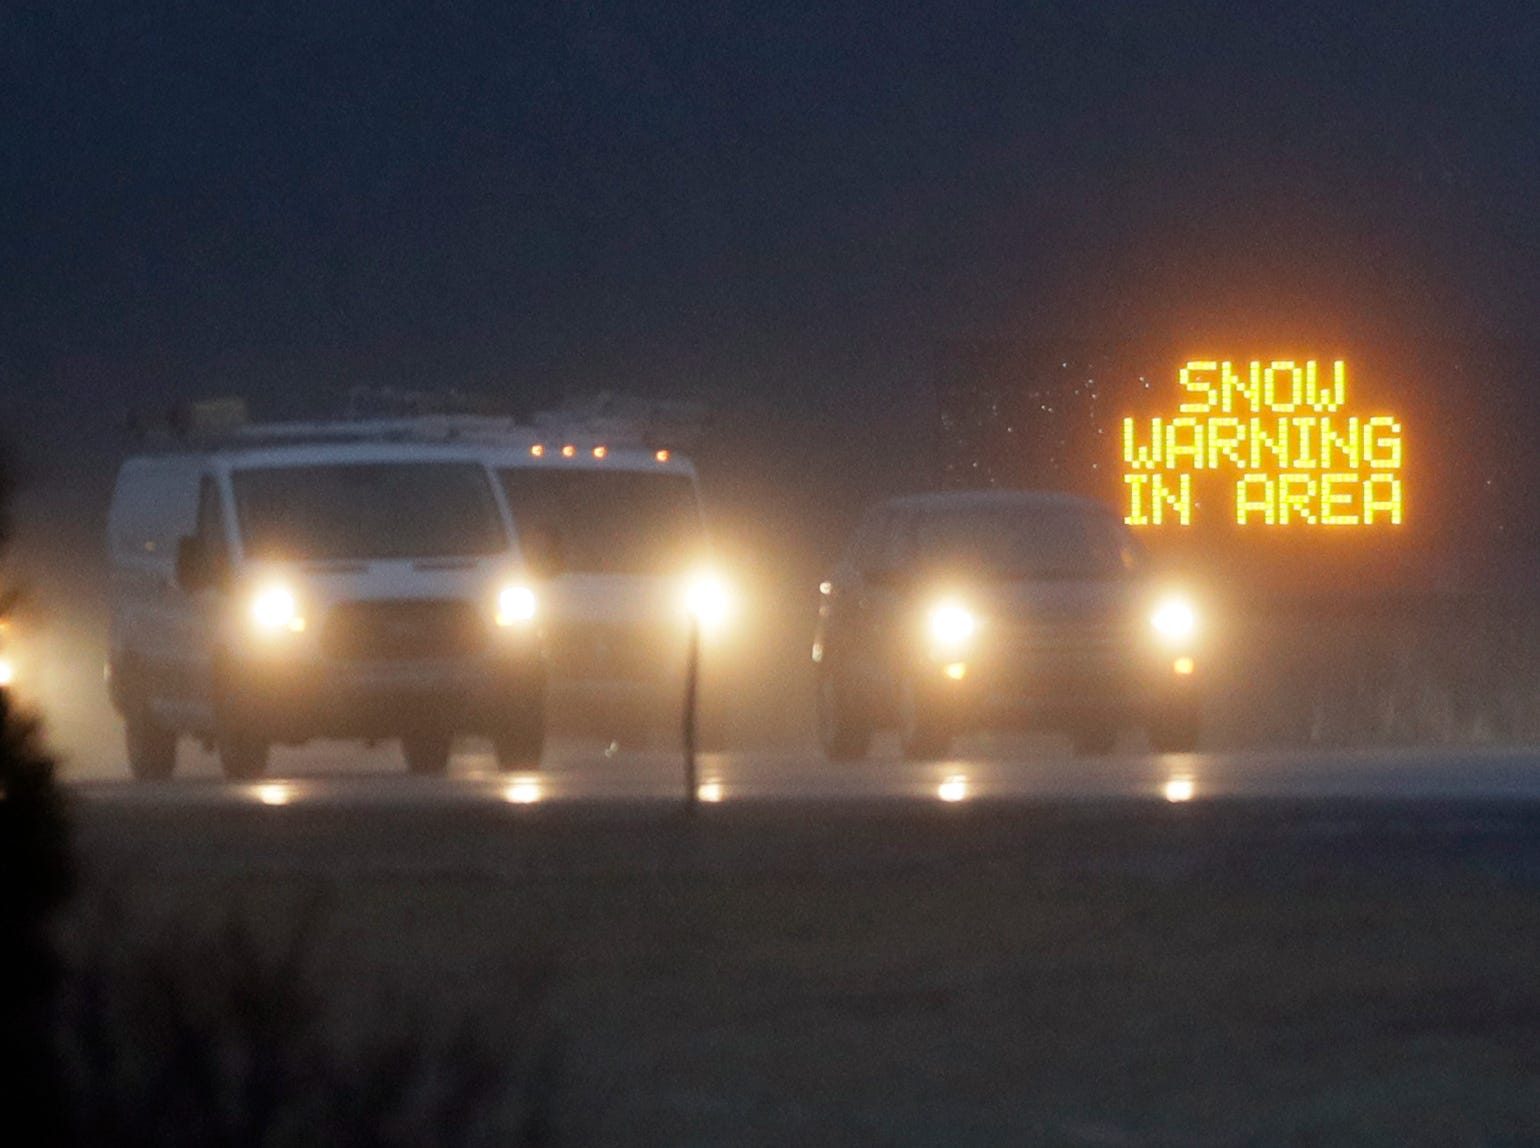 Traffic moves along I-70 near Lawrence, Kan., Friday, Jan. 11, 2019 ahead of an expected snow storm. The area is under a Winter Weather Advisory.